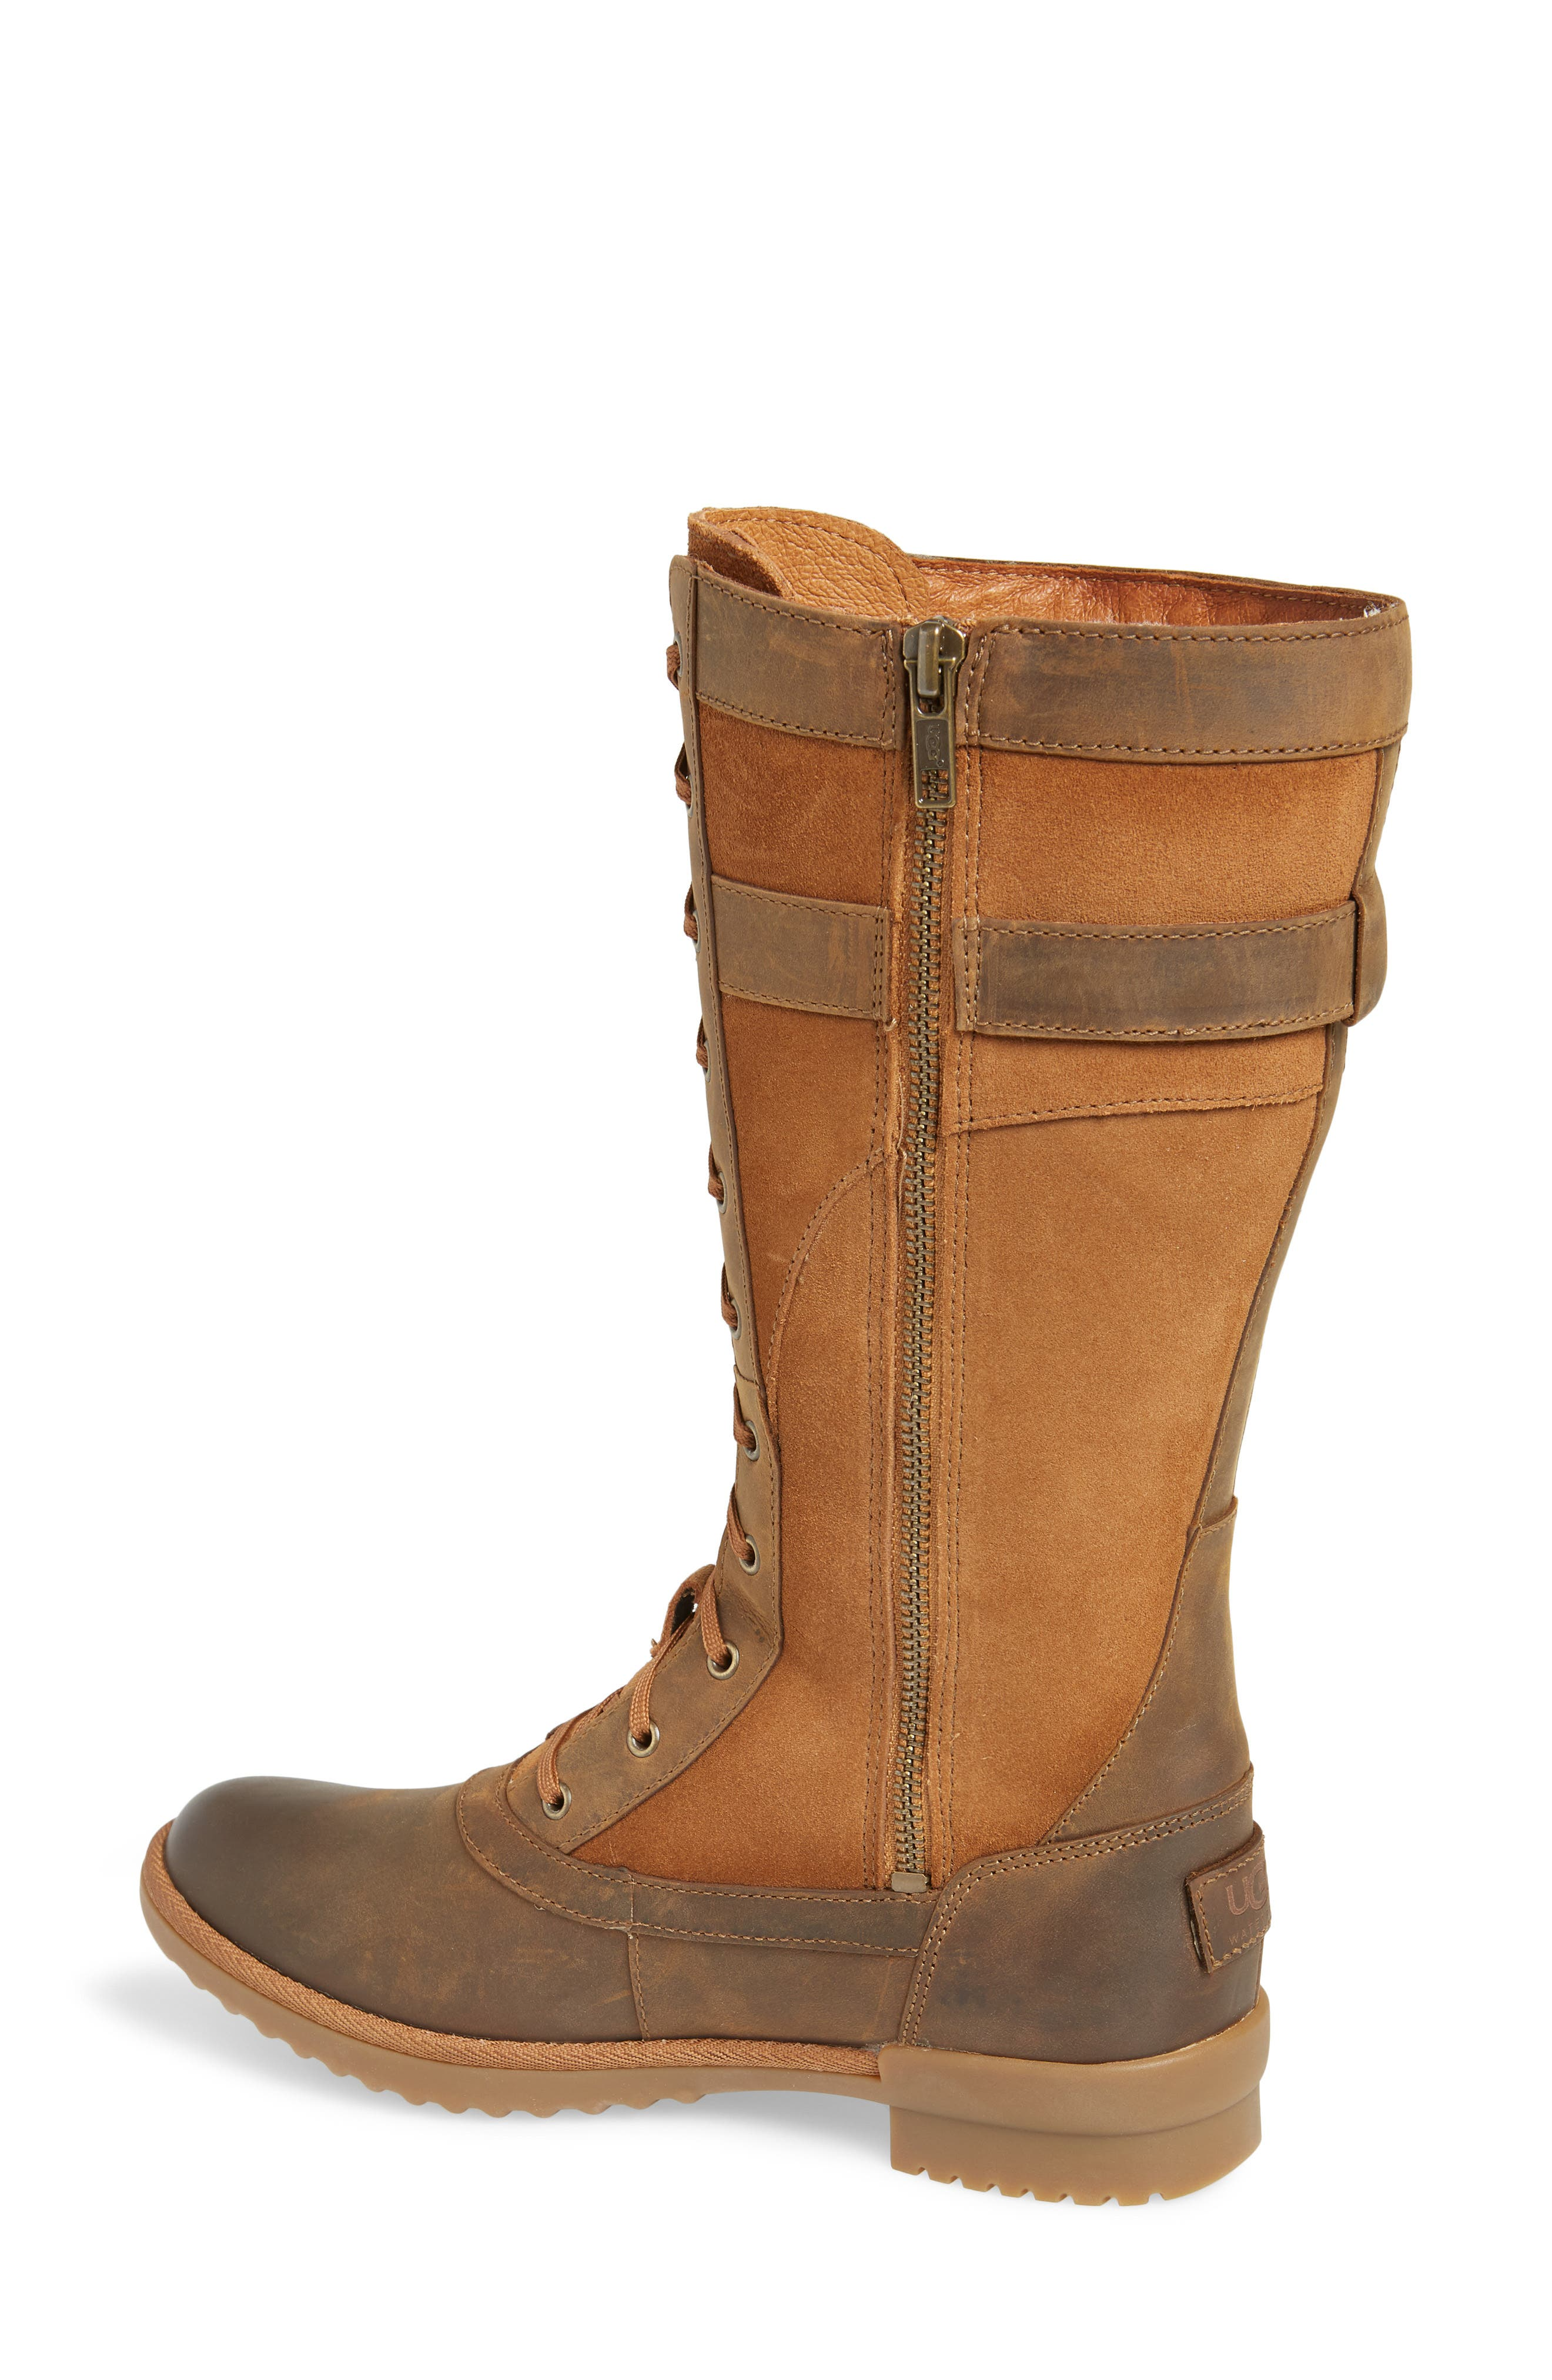 Brystl Waterproof Insulated Boot,                             Alternate thumbnail 2, color,                             CHESTNUT